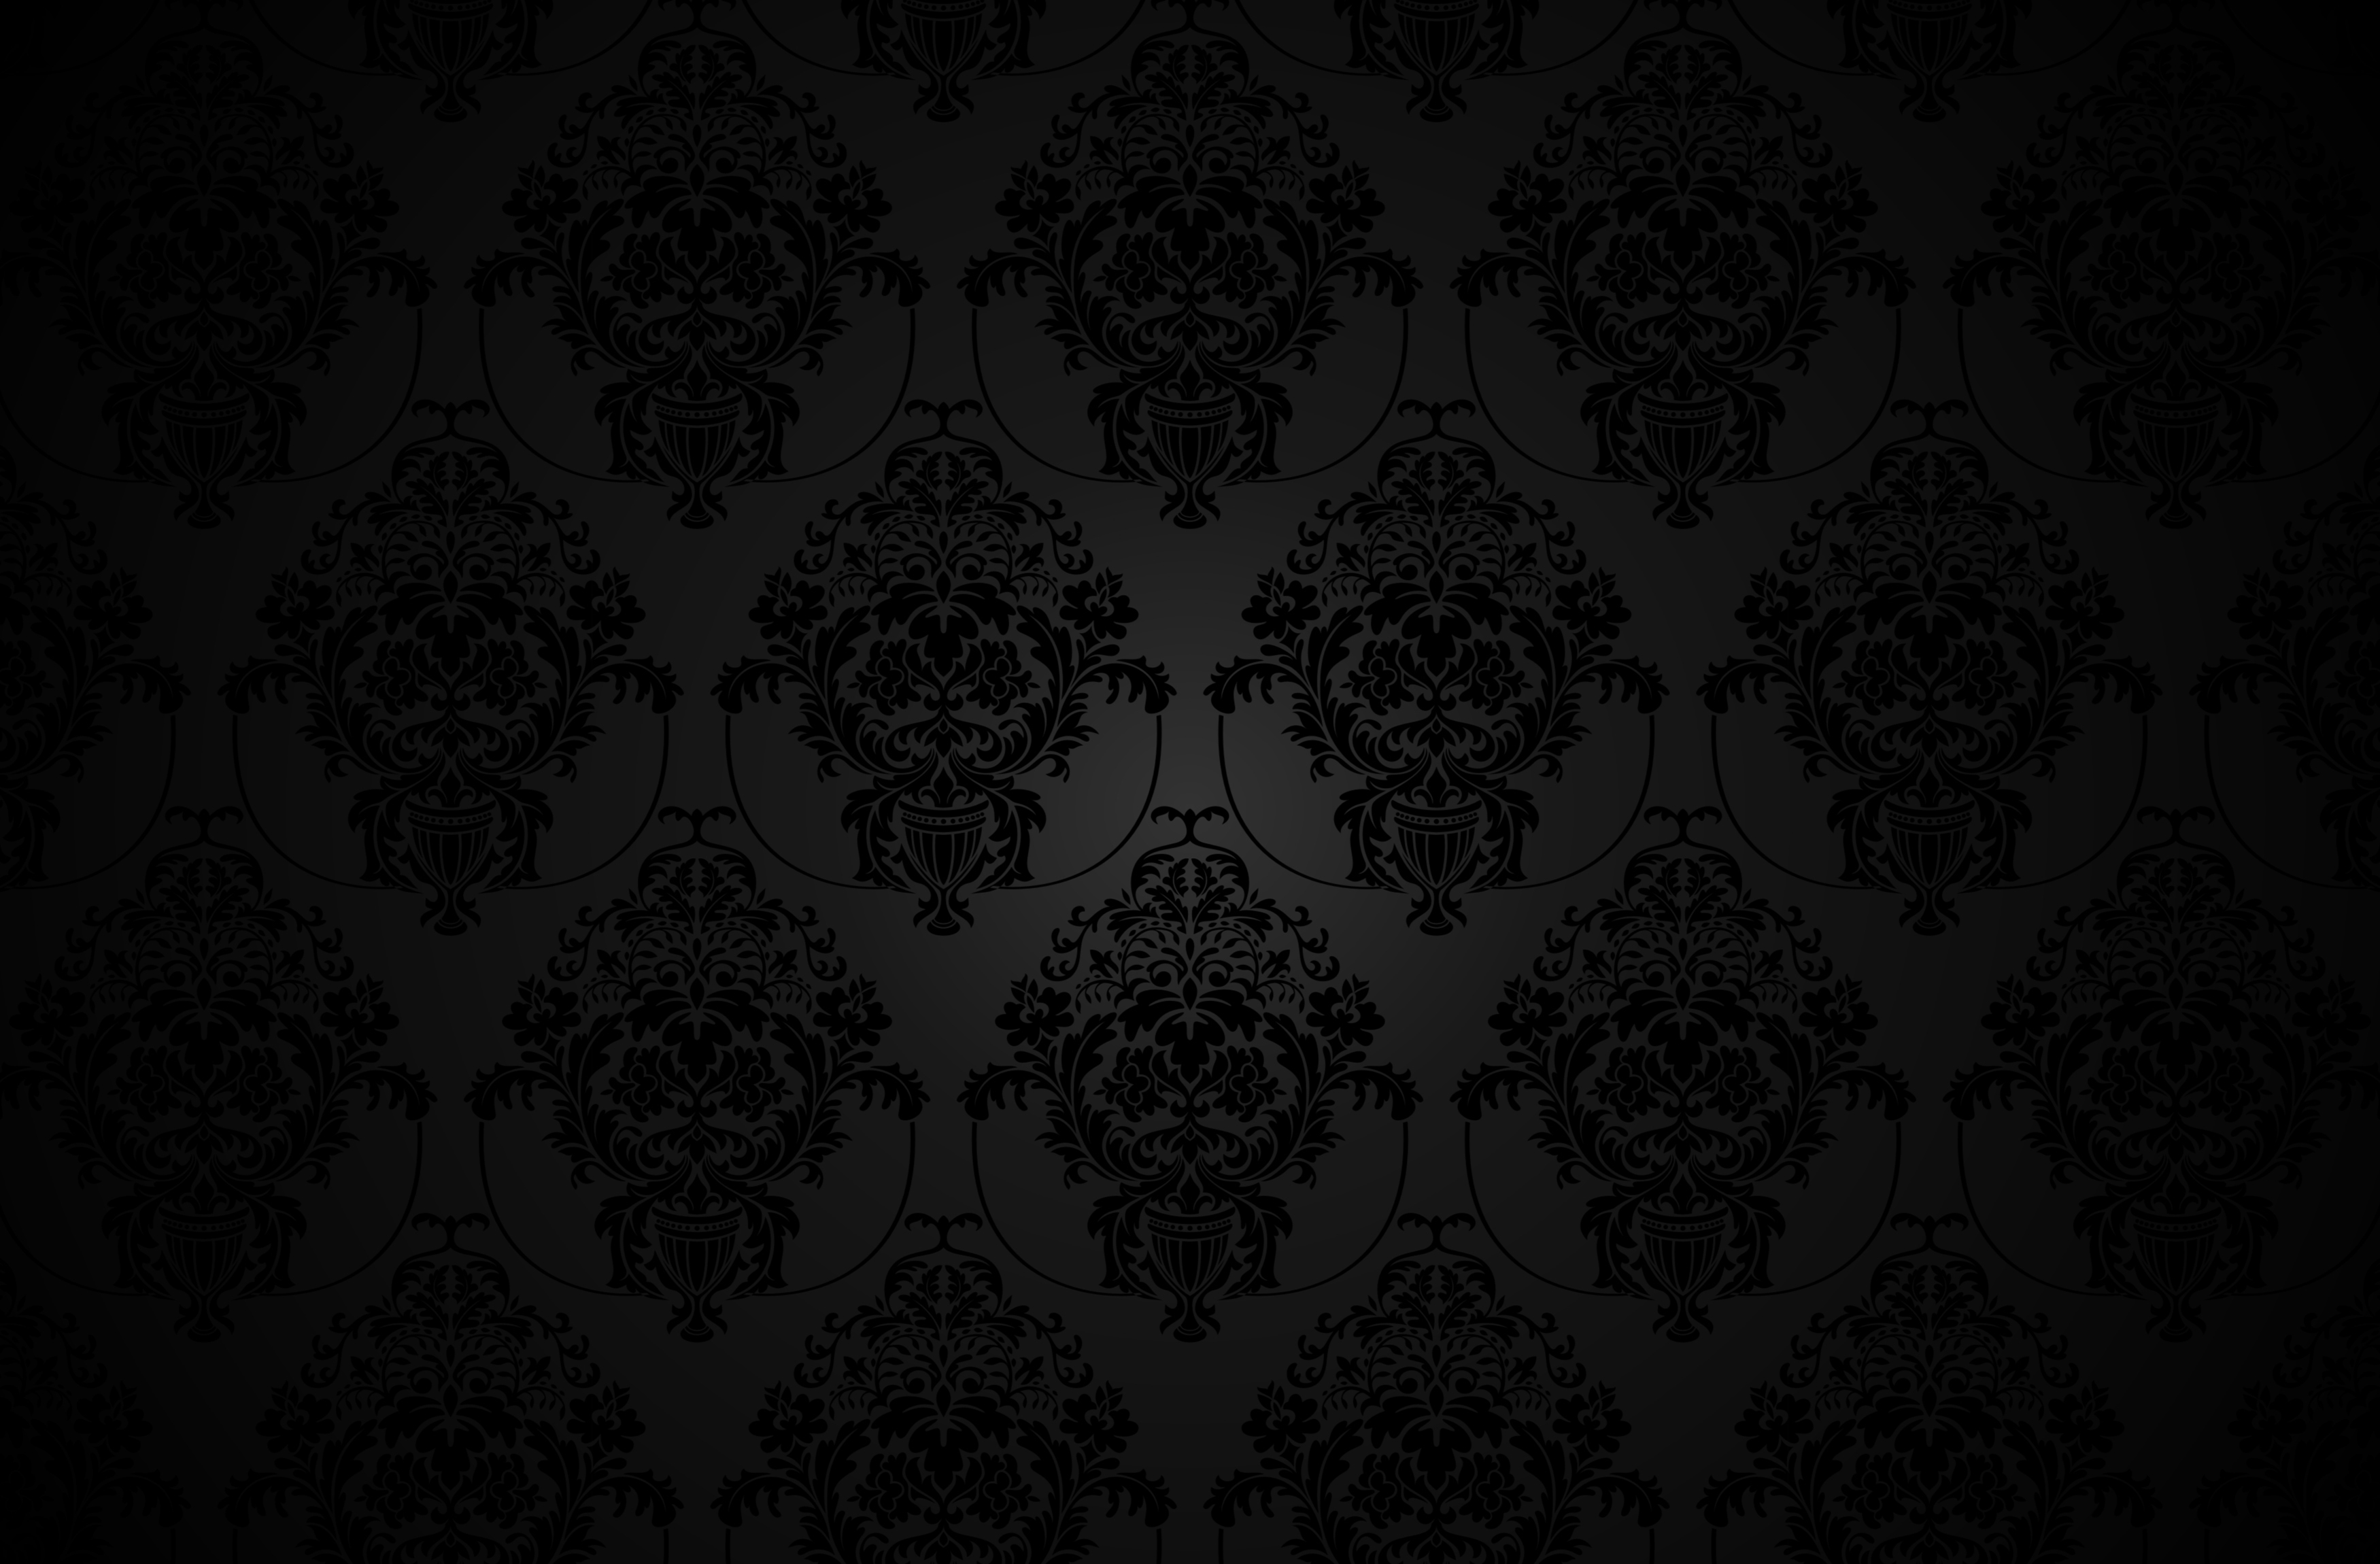 Pattern Black Dark Vintage Monochrome 4K Wallpaper - Best ...